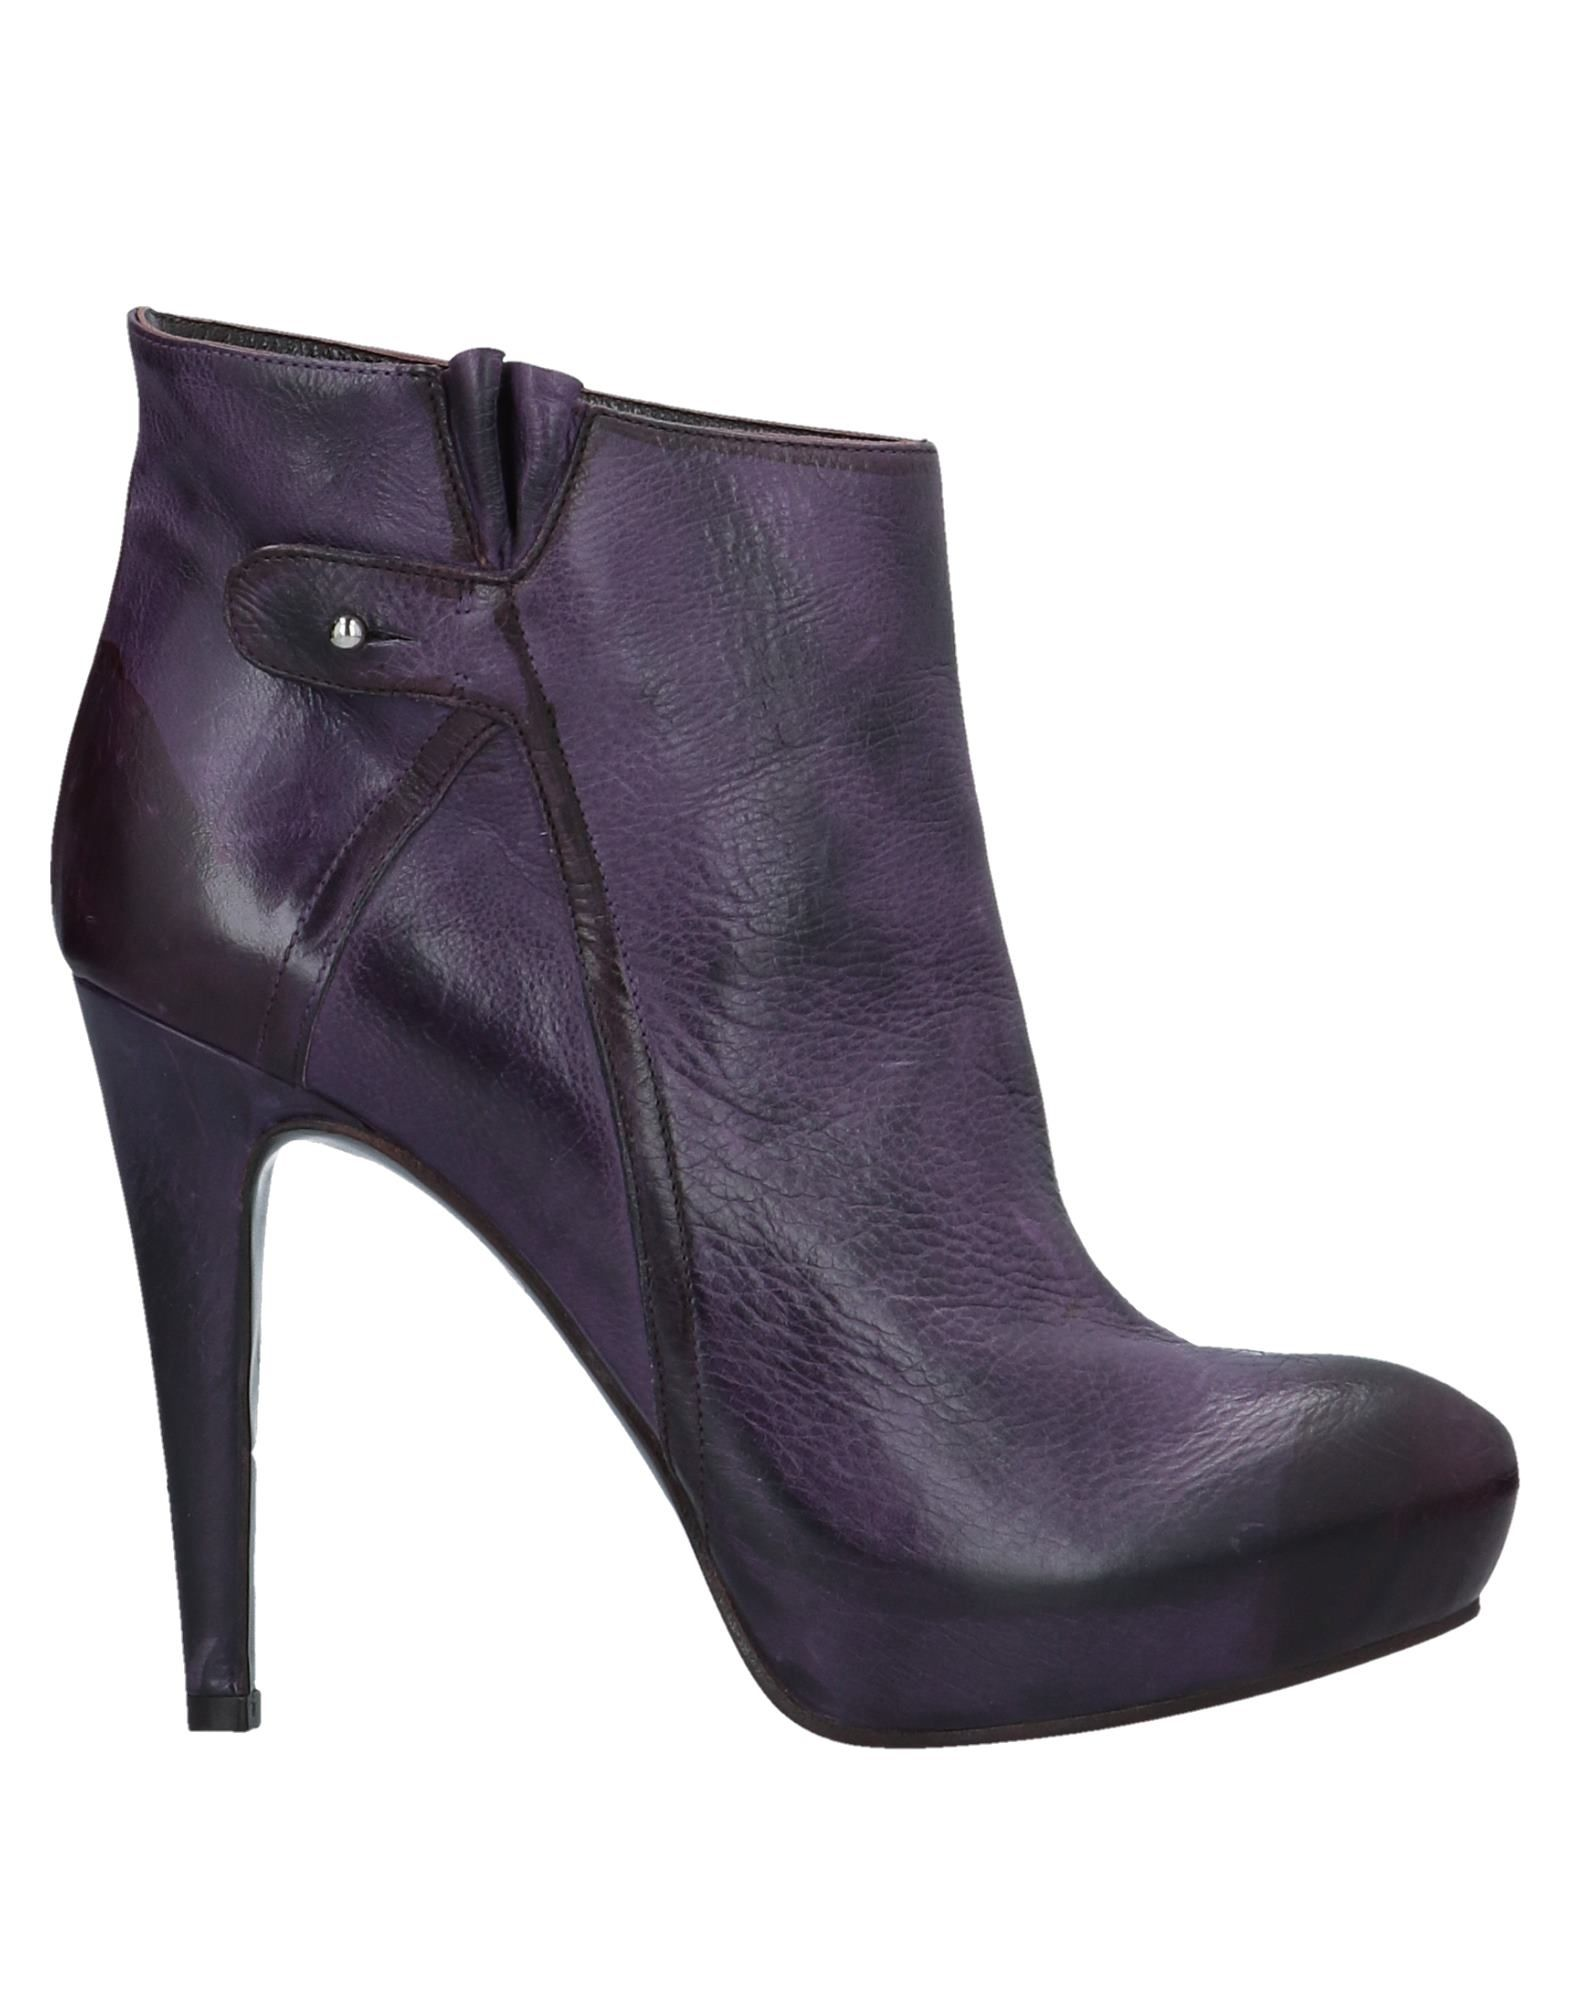 Raparo Ankle Boot - Women Raparo Ankle Boots Boots Boots online on  United Kingdom - 11536990VD 908682